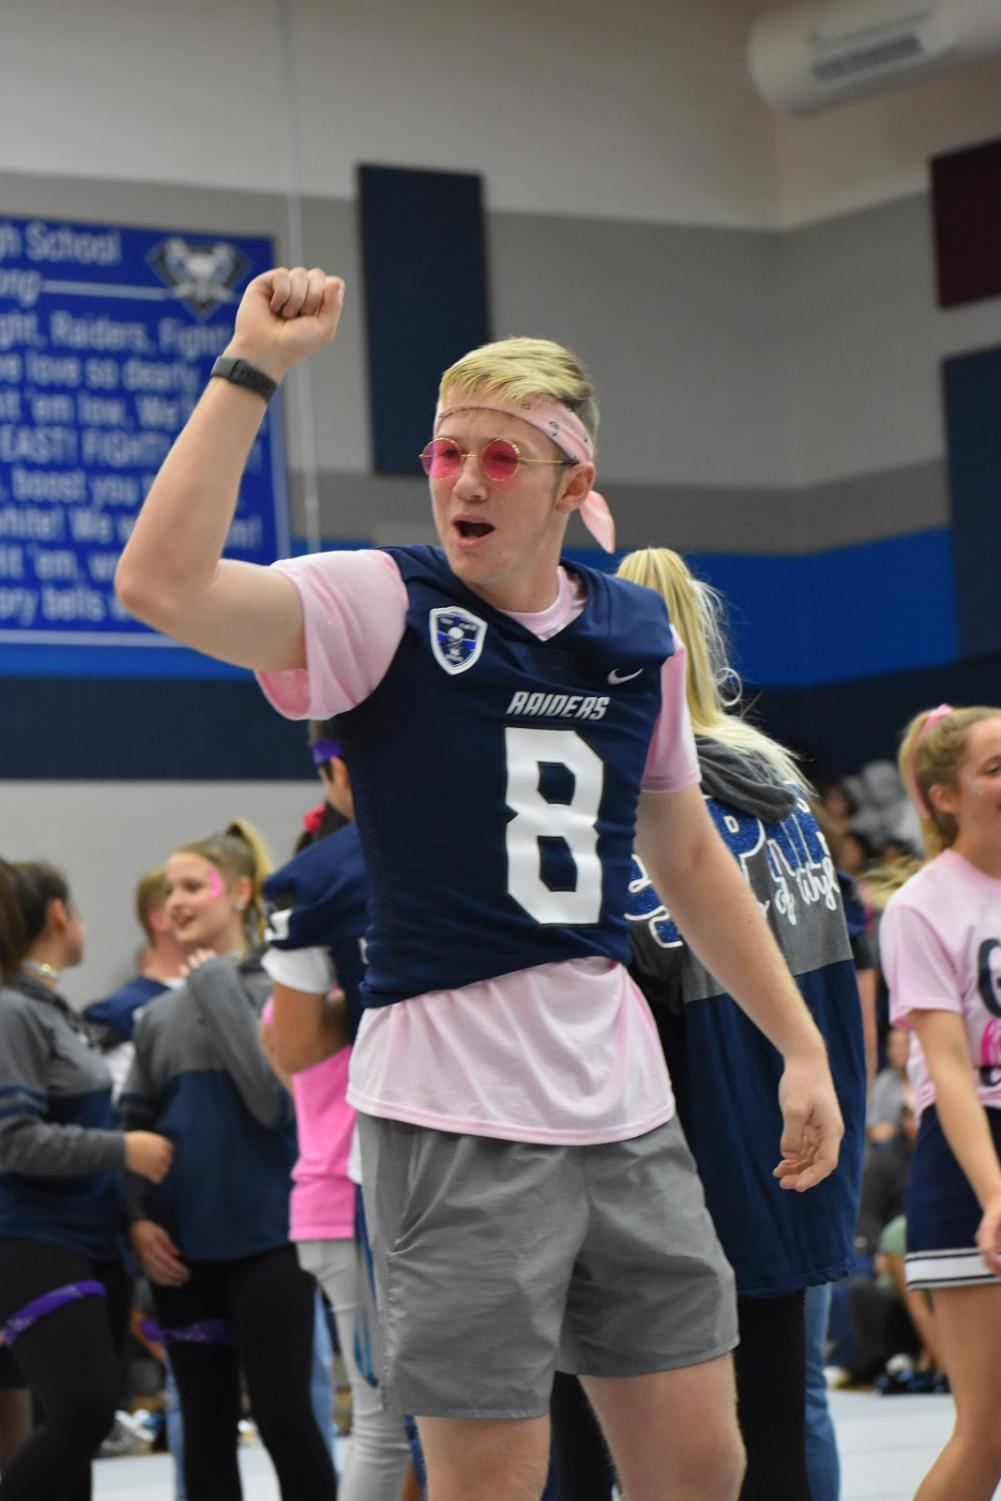 Raise+%E2%80%98em+up+%5C%5C+Cheering+on+the+stands%2C+senior+Luke+Bumpus%2C+wraps+up+his+speech+pumping+up+the+crowd+at+the+Pink+Out+pep+rally+Oct.7.